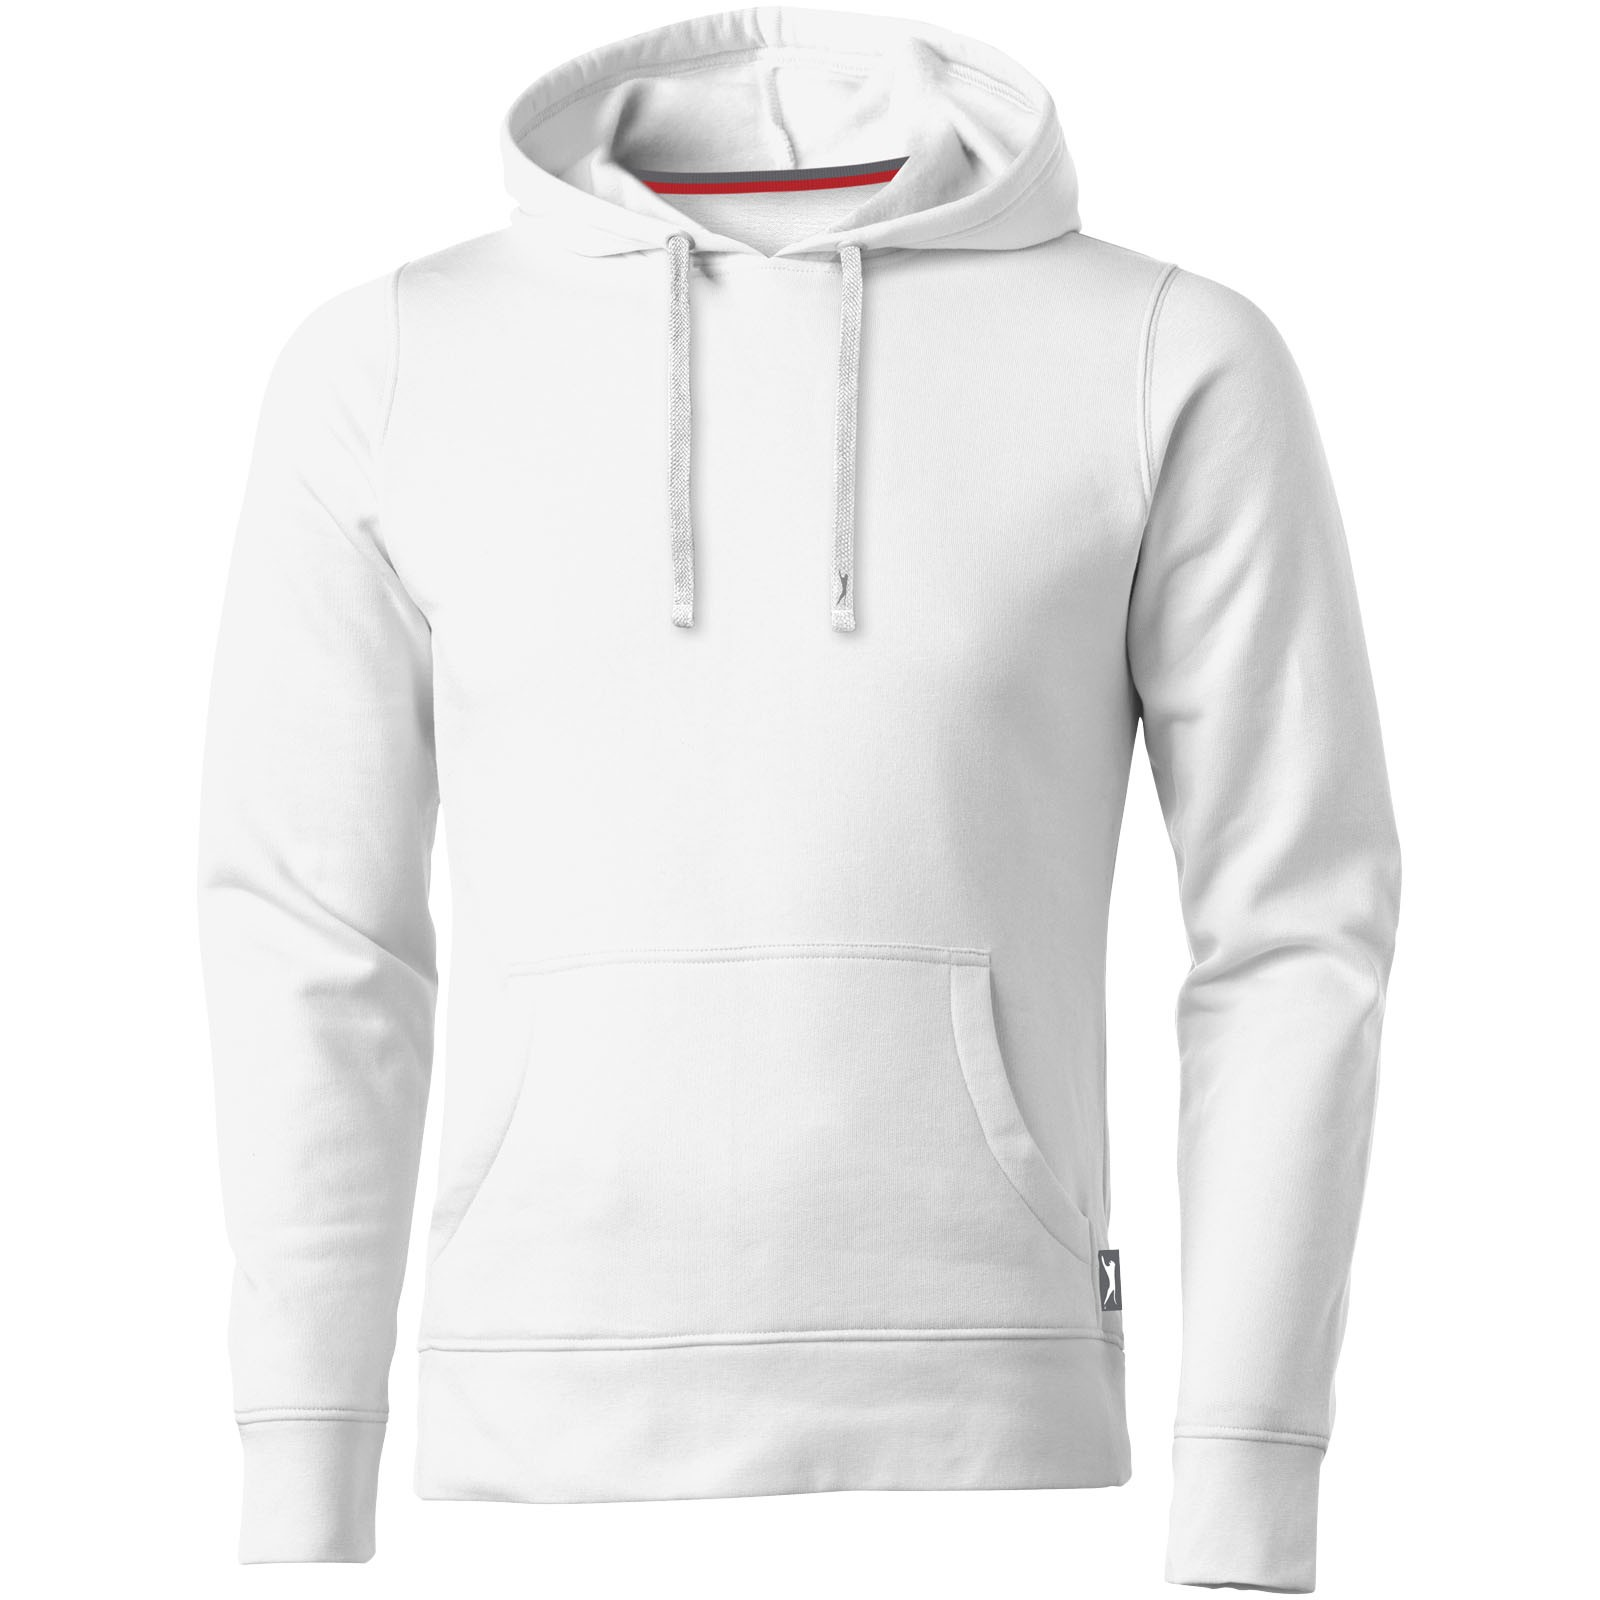 Alley hooded sweater - White / S